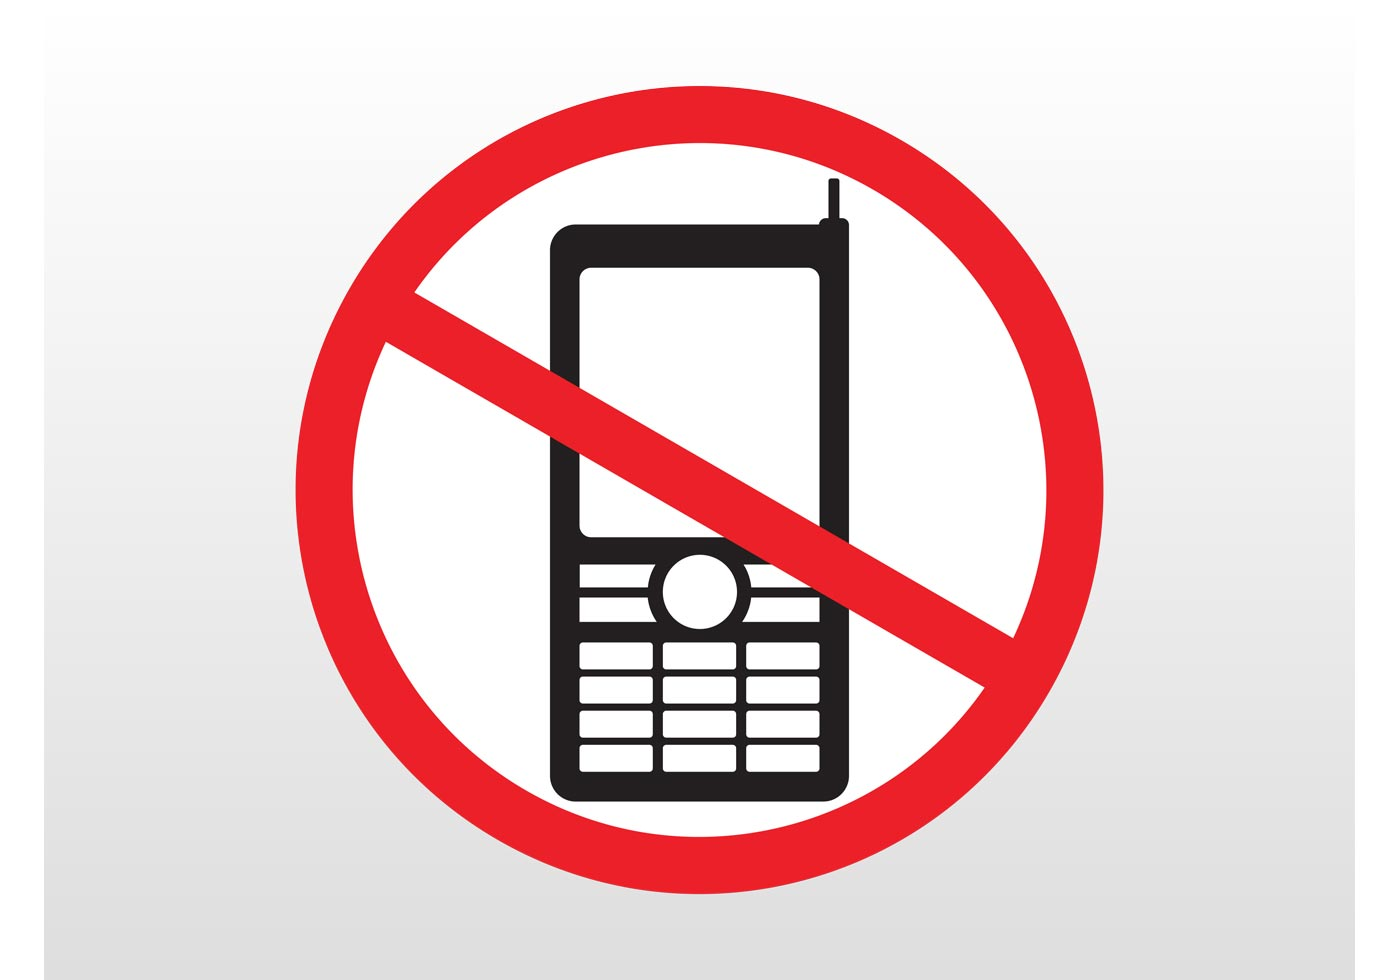 No Phones Sign - Download Free Vector Art, Stock Graphics ...